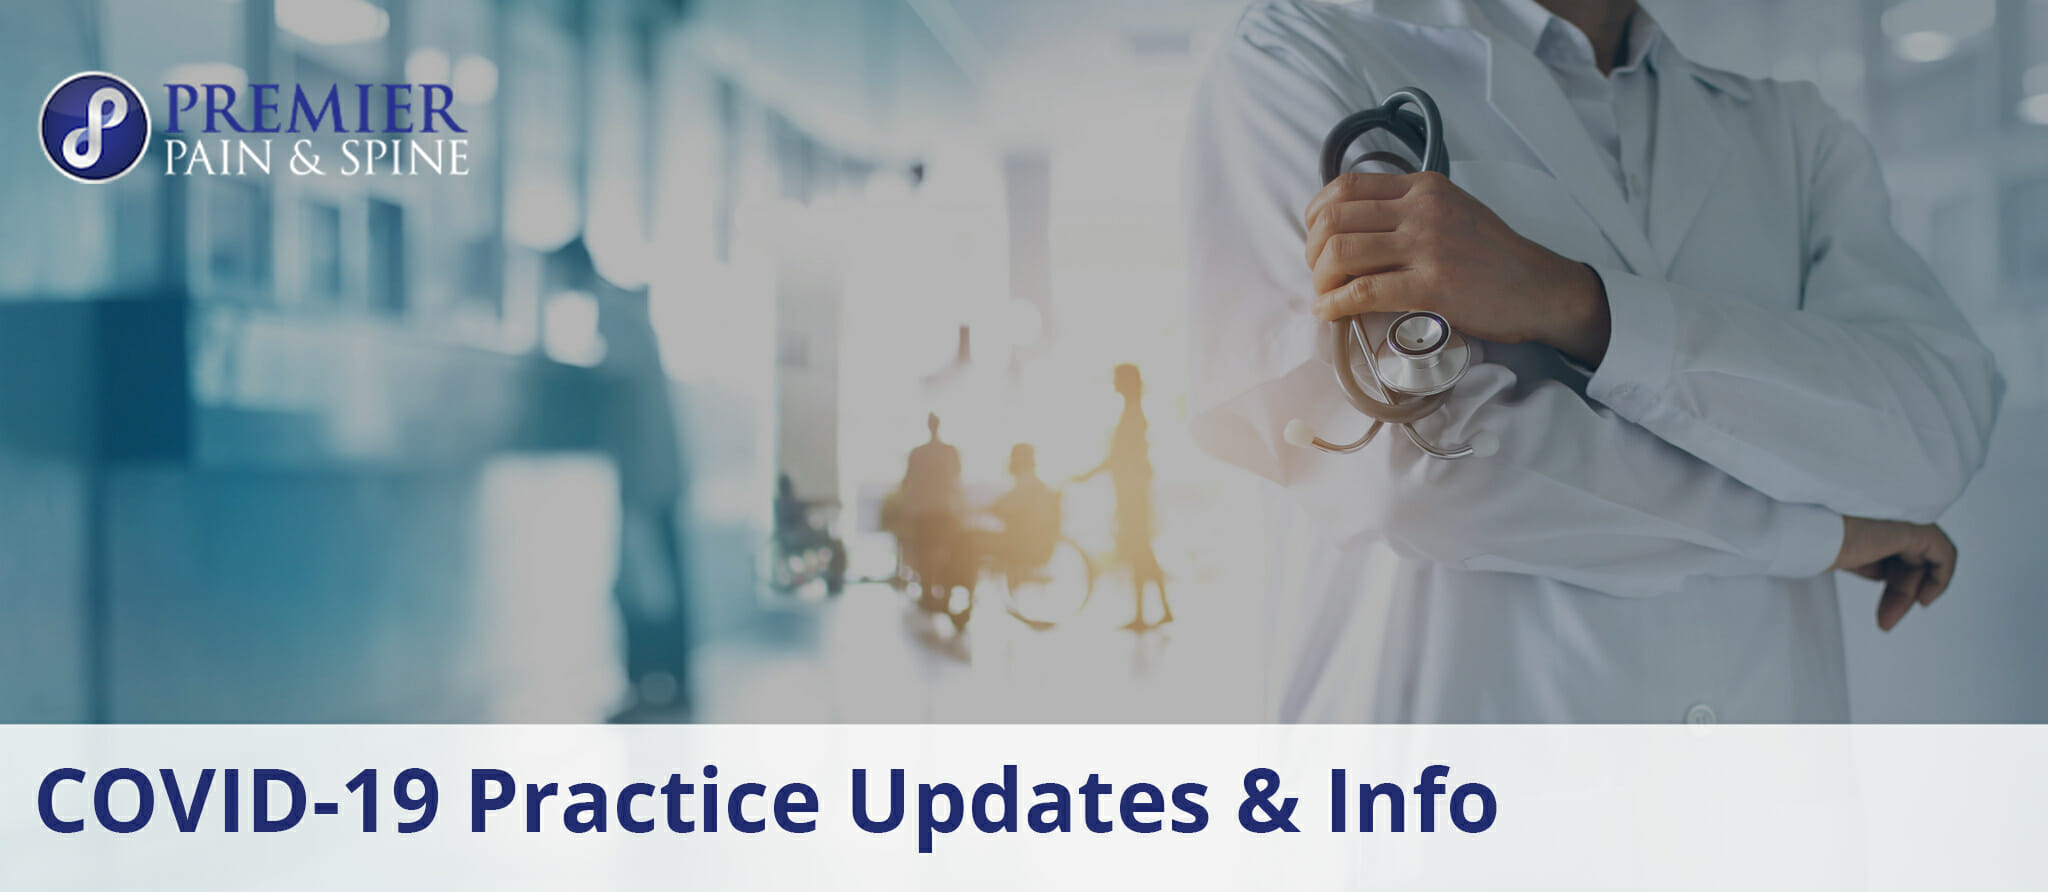 premier pain and spine - covid19 practice updates and information copy